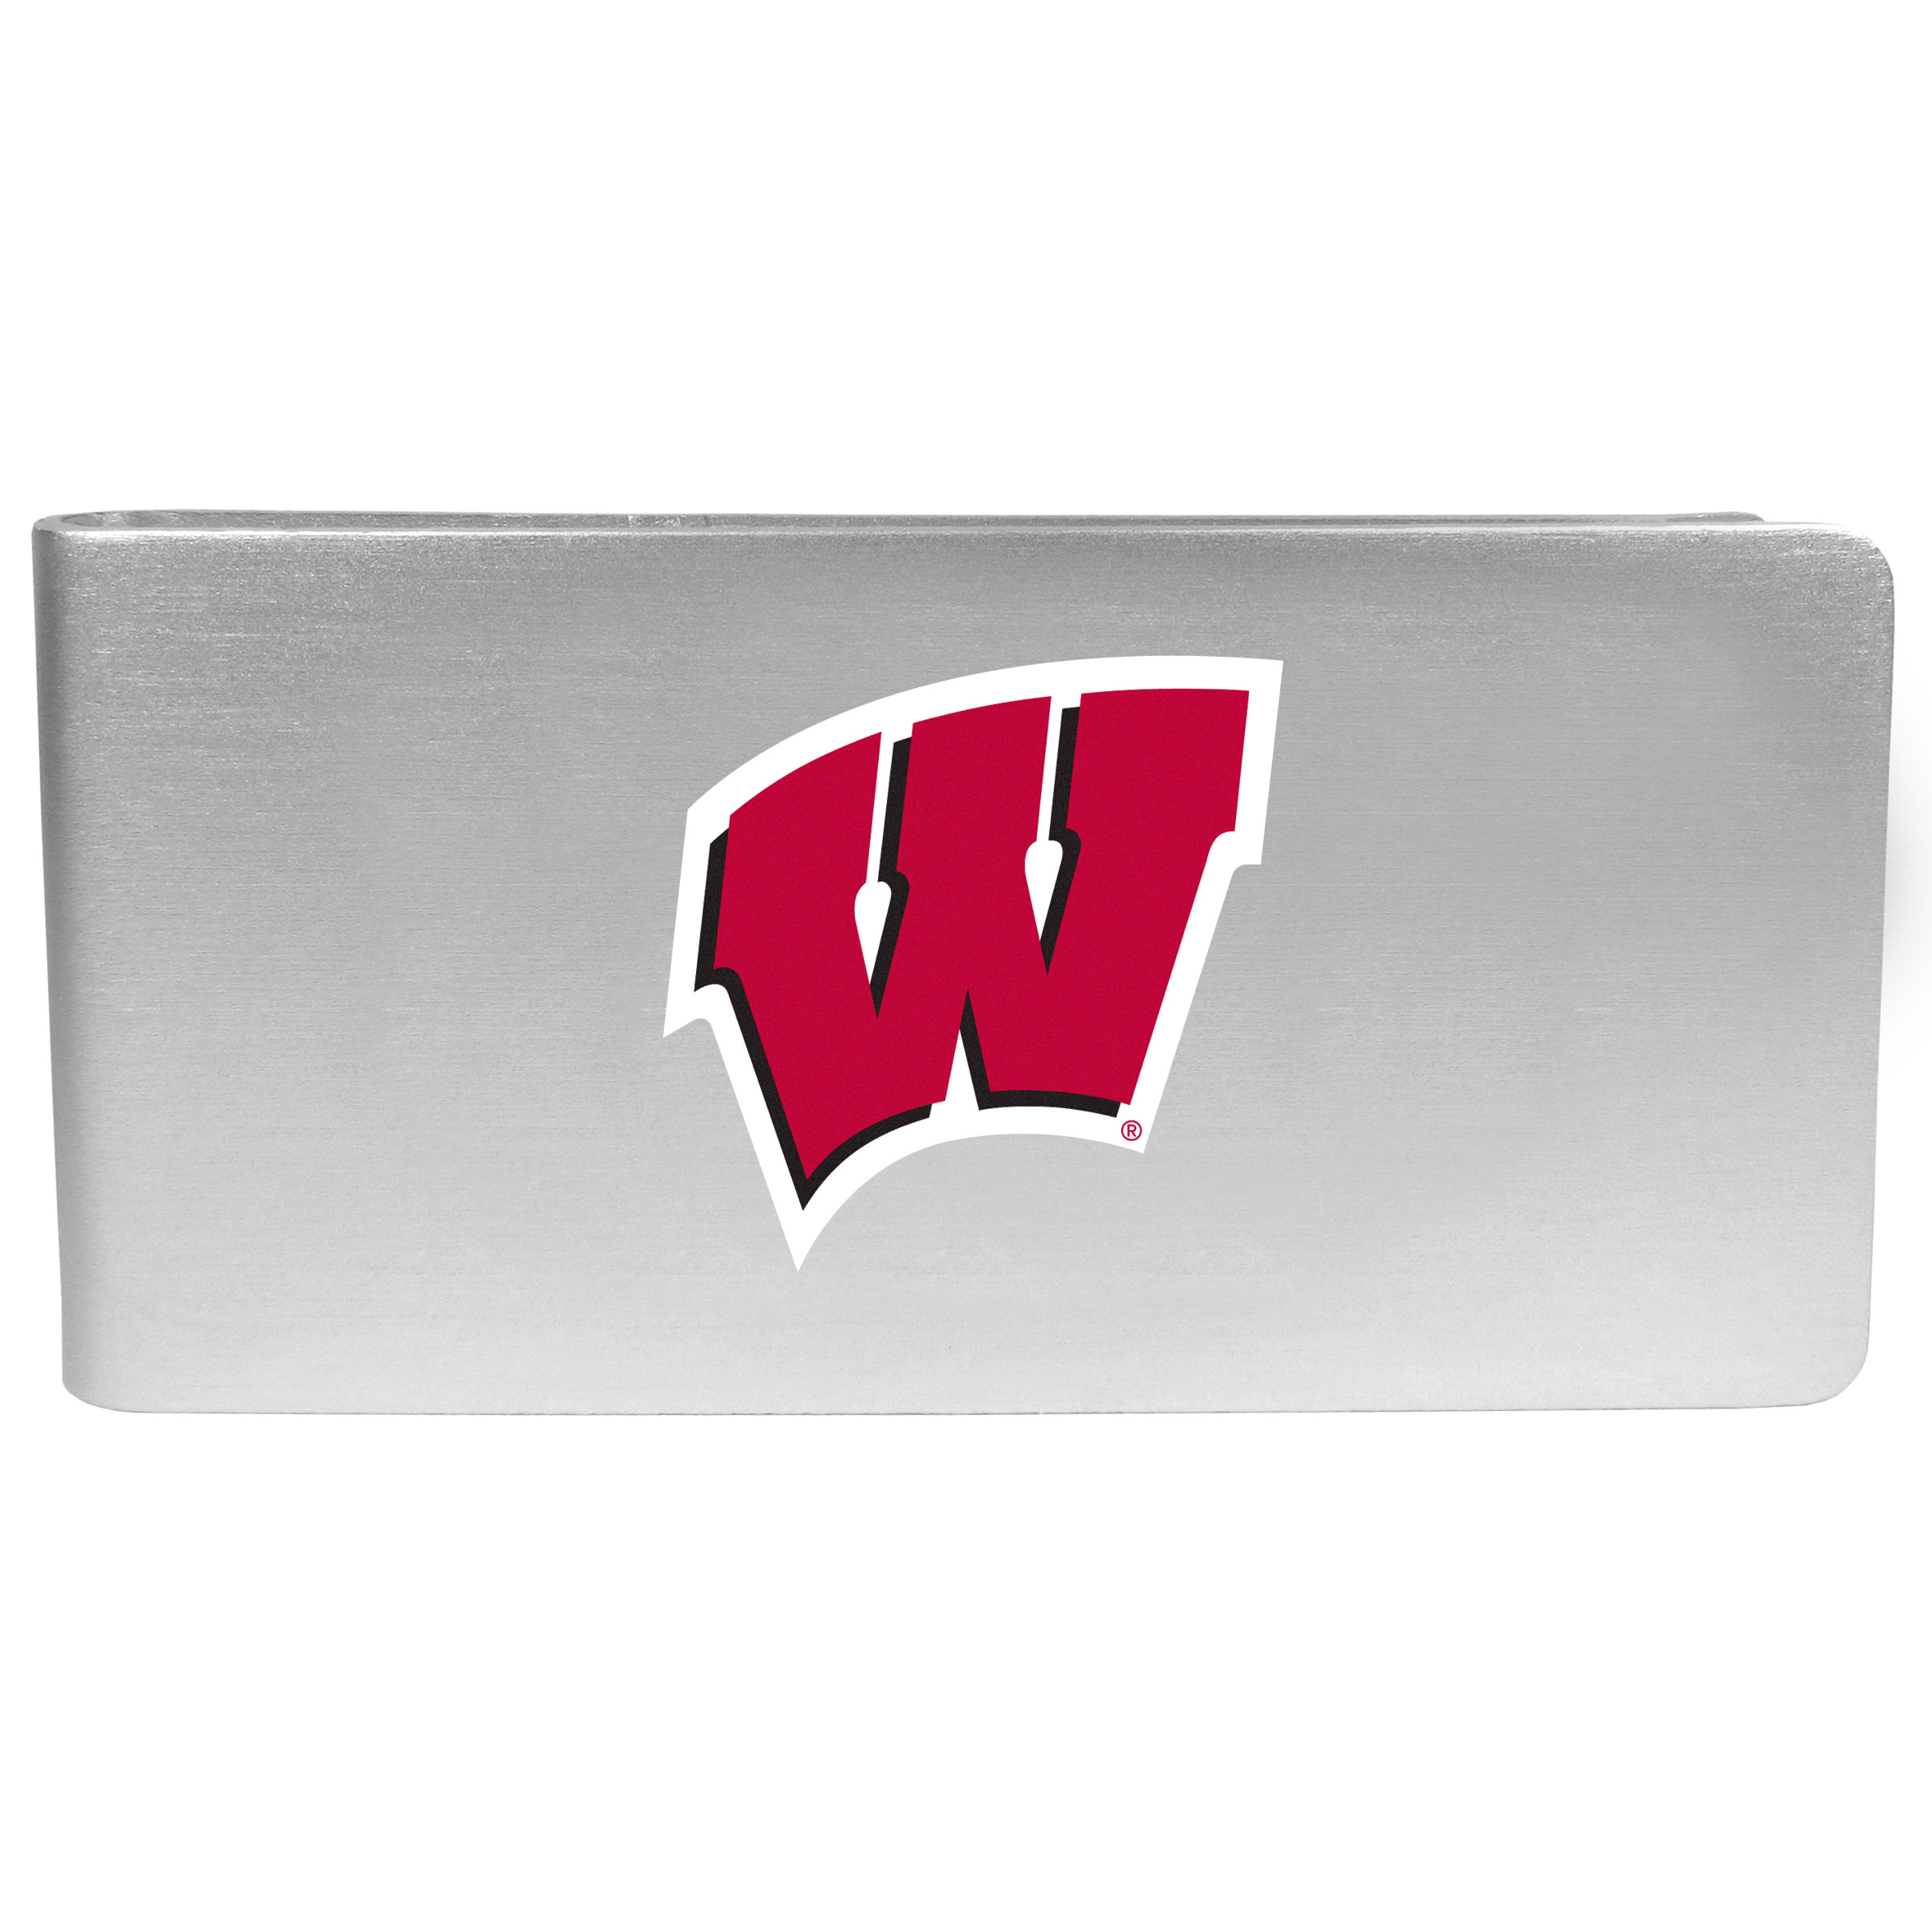 Wisconsin Badgers Logo Money Clip - Our brushed metal money clip has classic style and functionality. The attractive clip features the Wisconsin Badgers logo expertly printed on front.